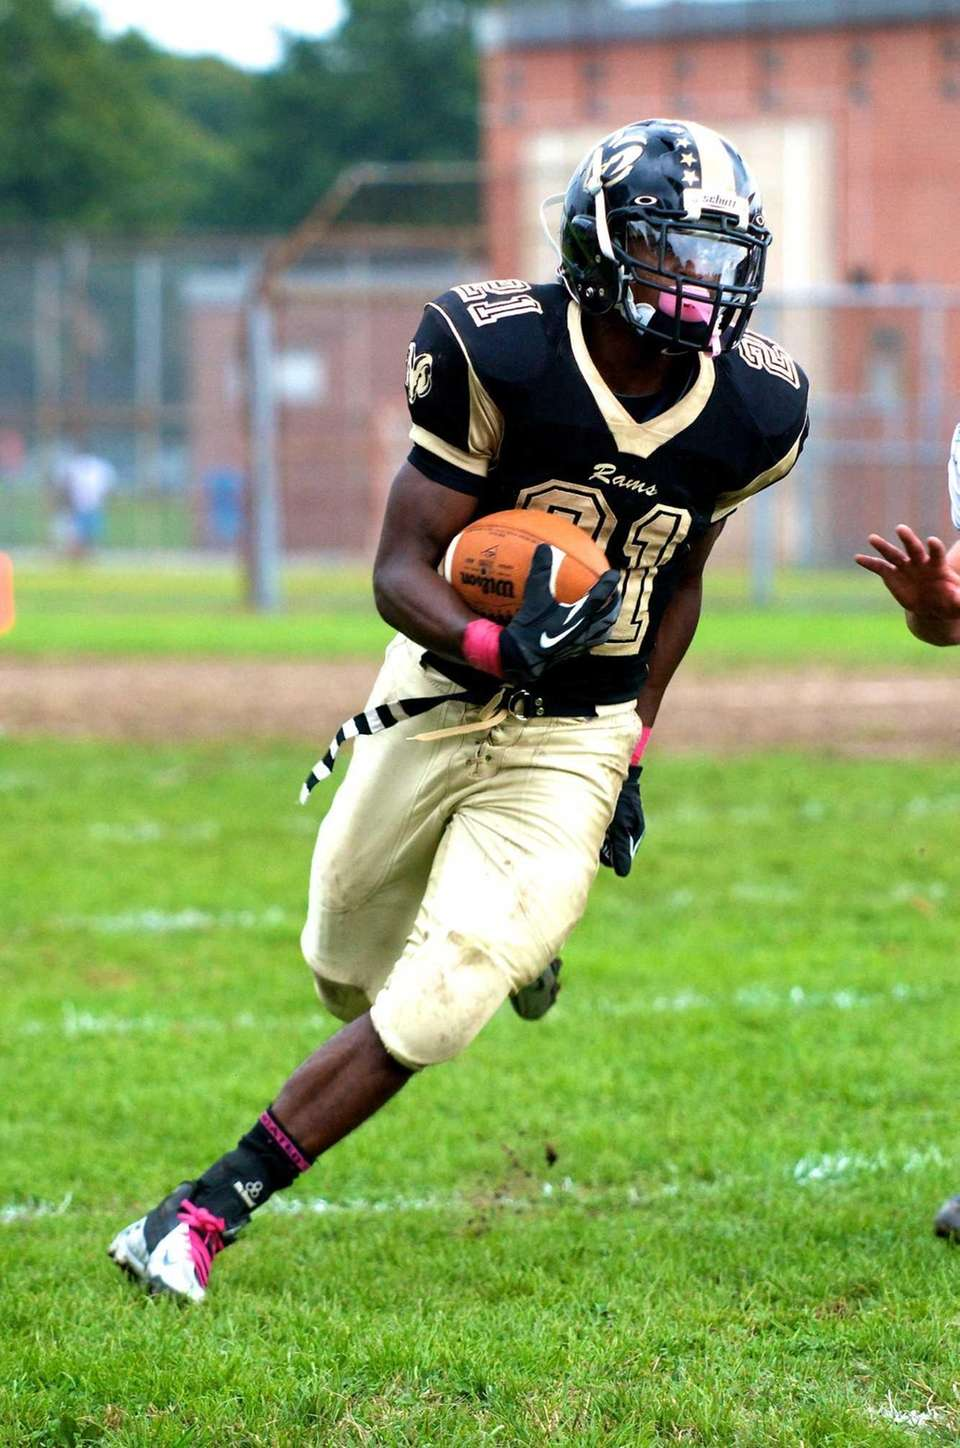 West Hempstead runnick back Tayvon Hall runs the